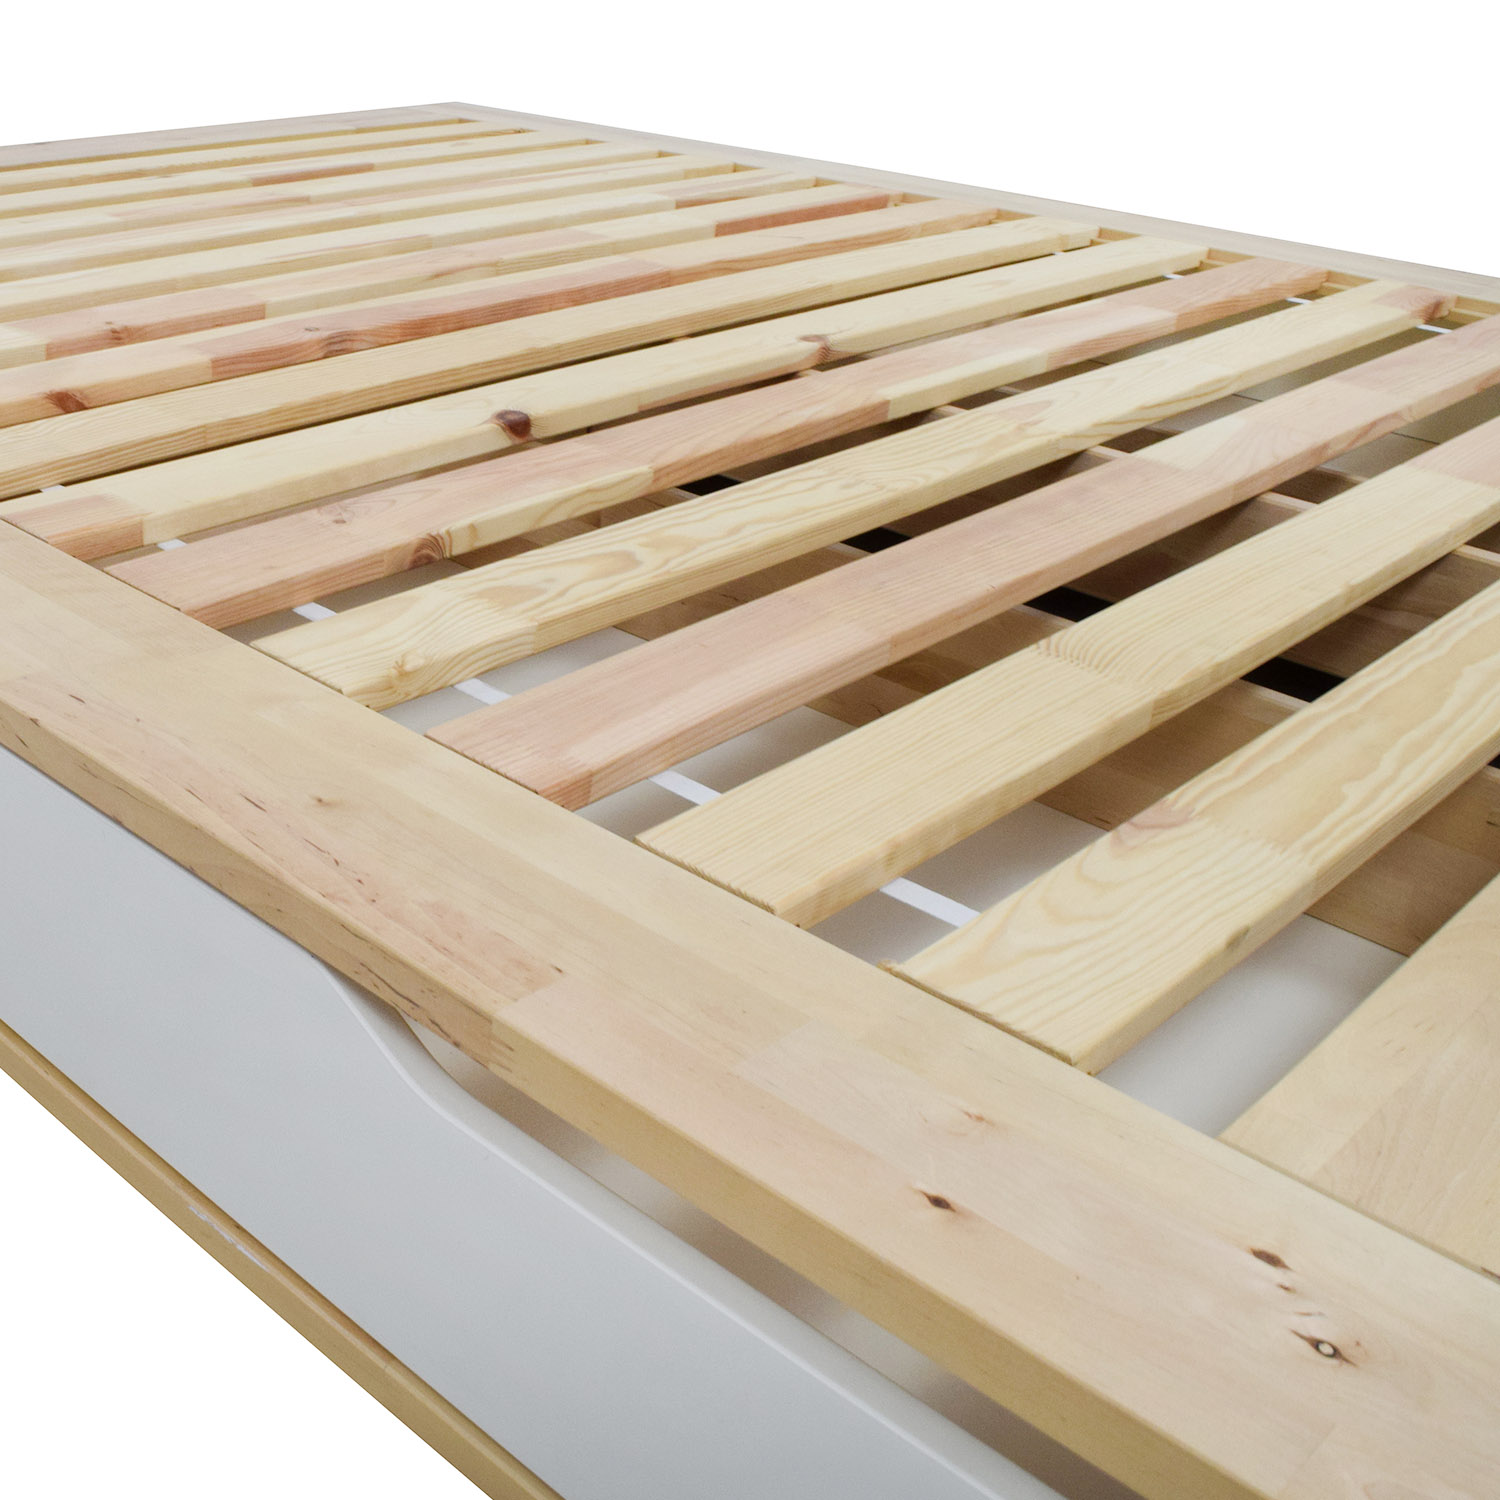 35 Off Ikea Birch Wood Queen Bed Frame With Storage Beds